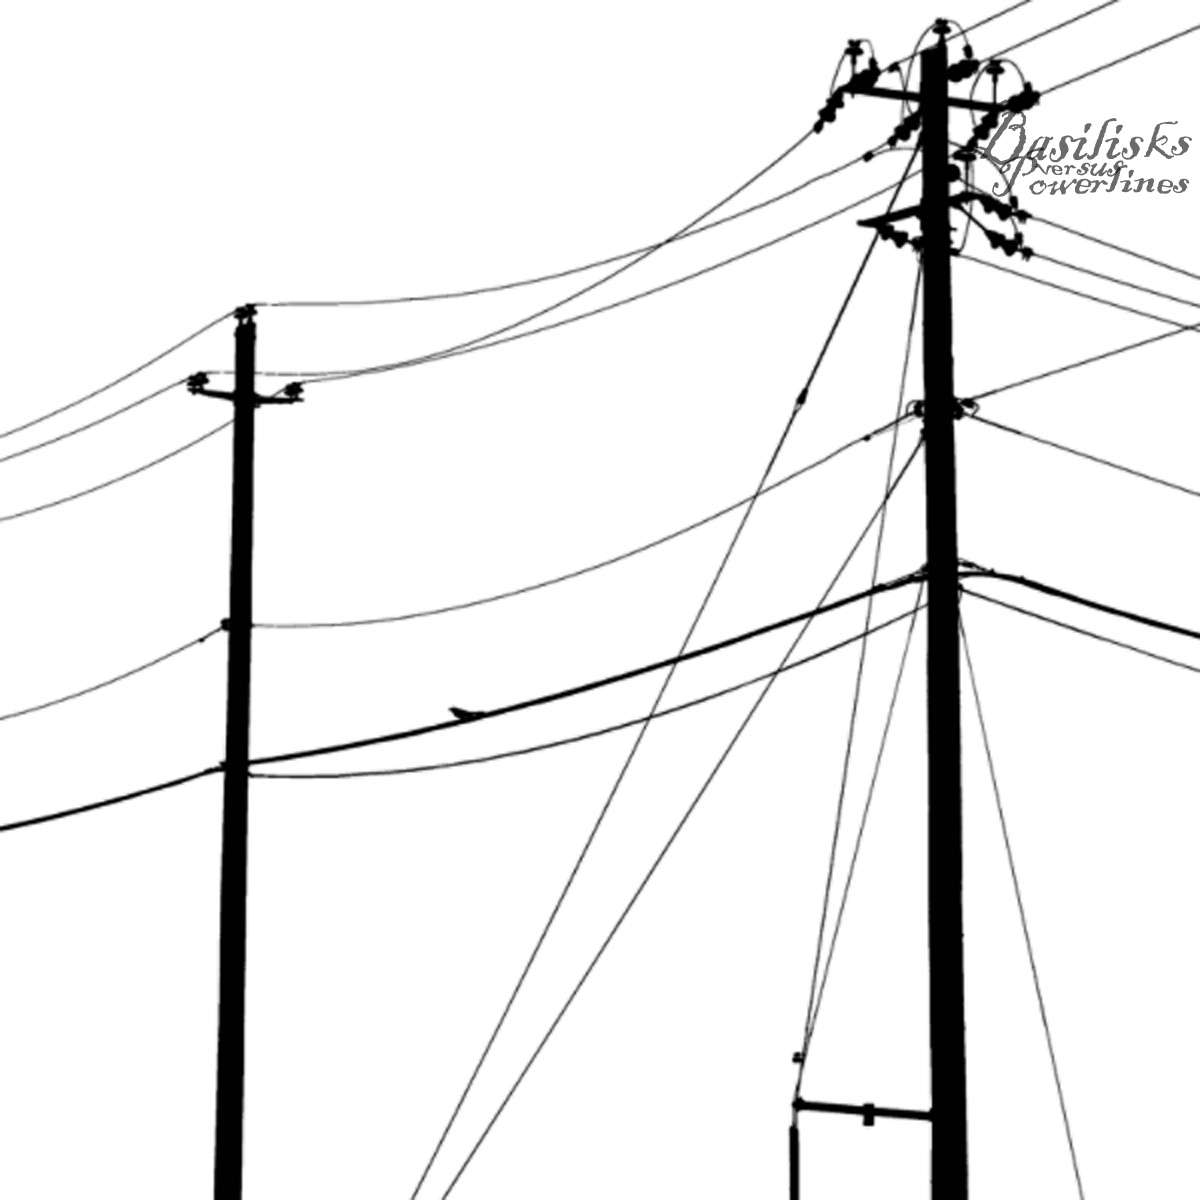 Telephone Pole Wires Diagram Wiring Library Underground To Garage Free Download Schematic 1200x1200 Drawing Electricity Block United States Continents